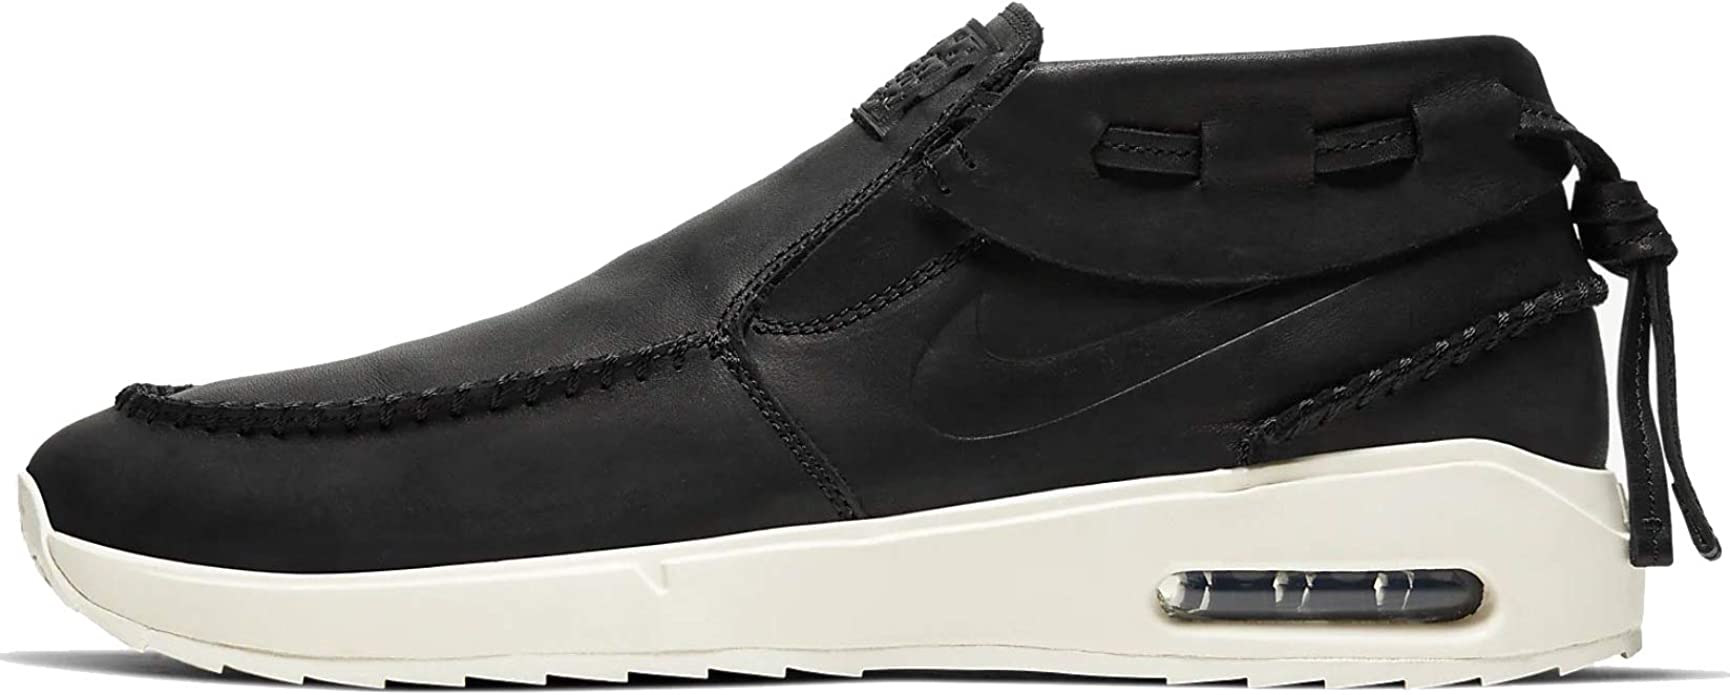 Nike SB Air Max Janoski 2 MOC Chaussures pour Homme